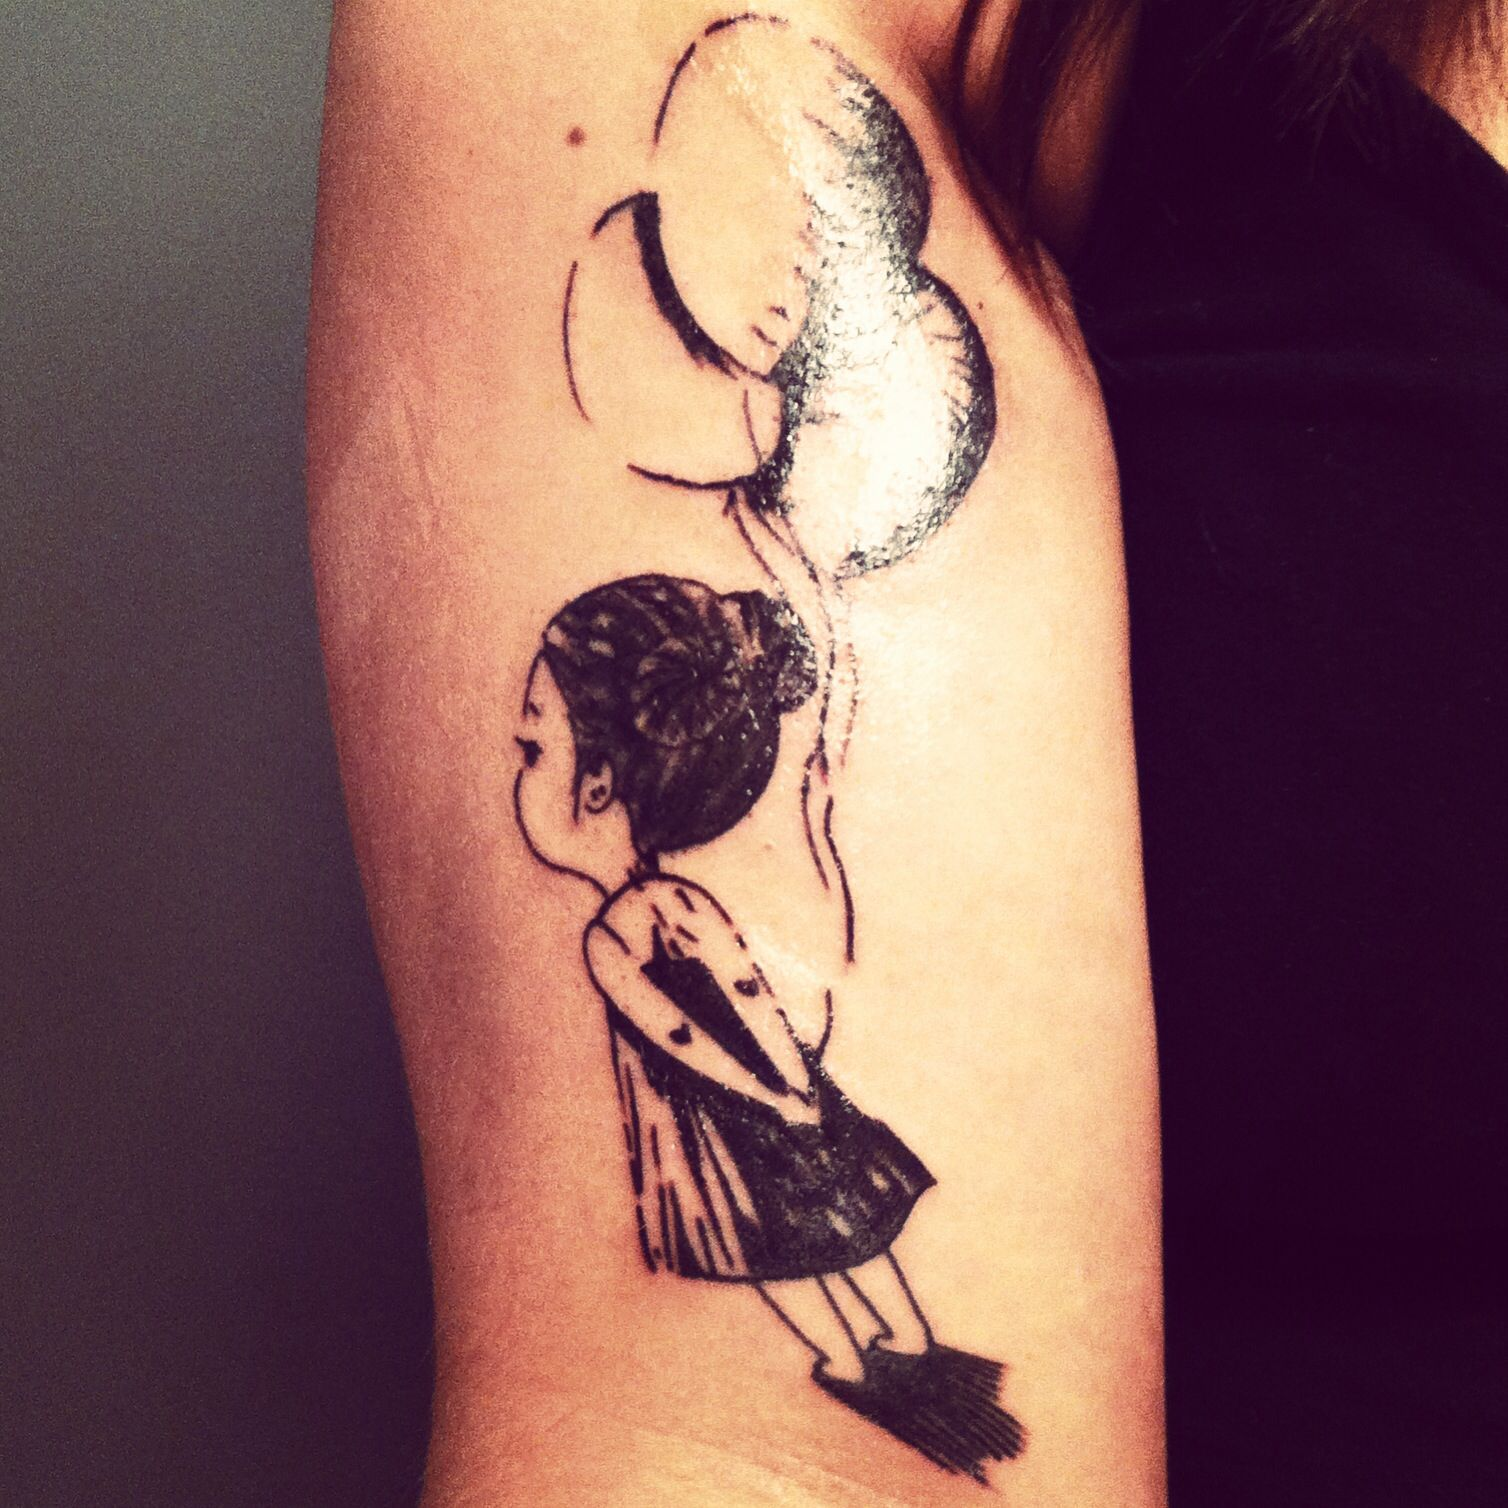 My new tattoo girl with balloons ink obsession for My tattoo girls